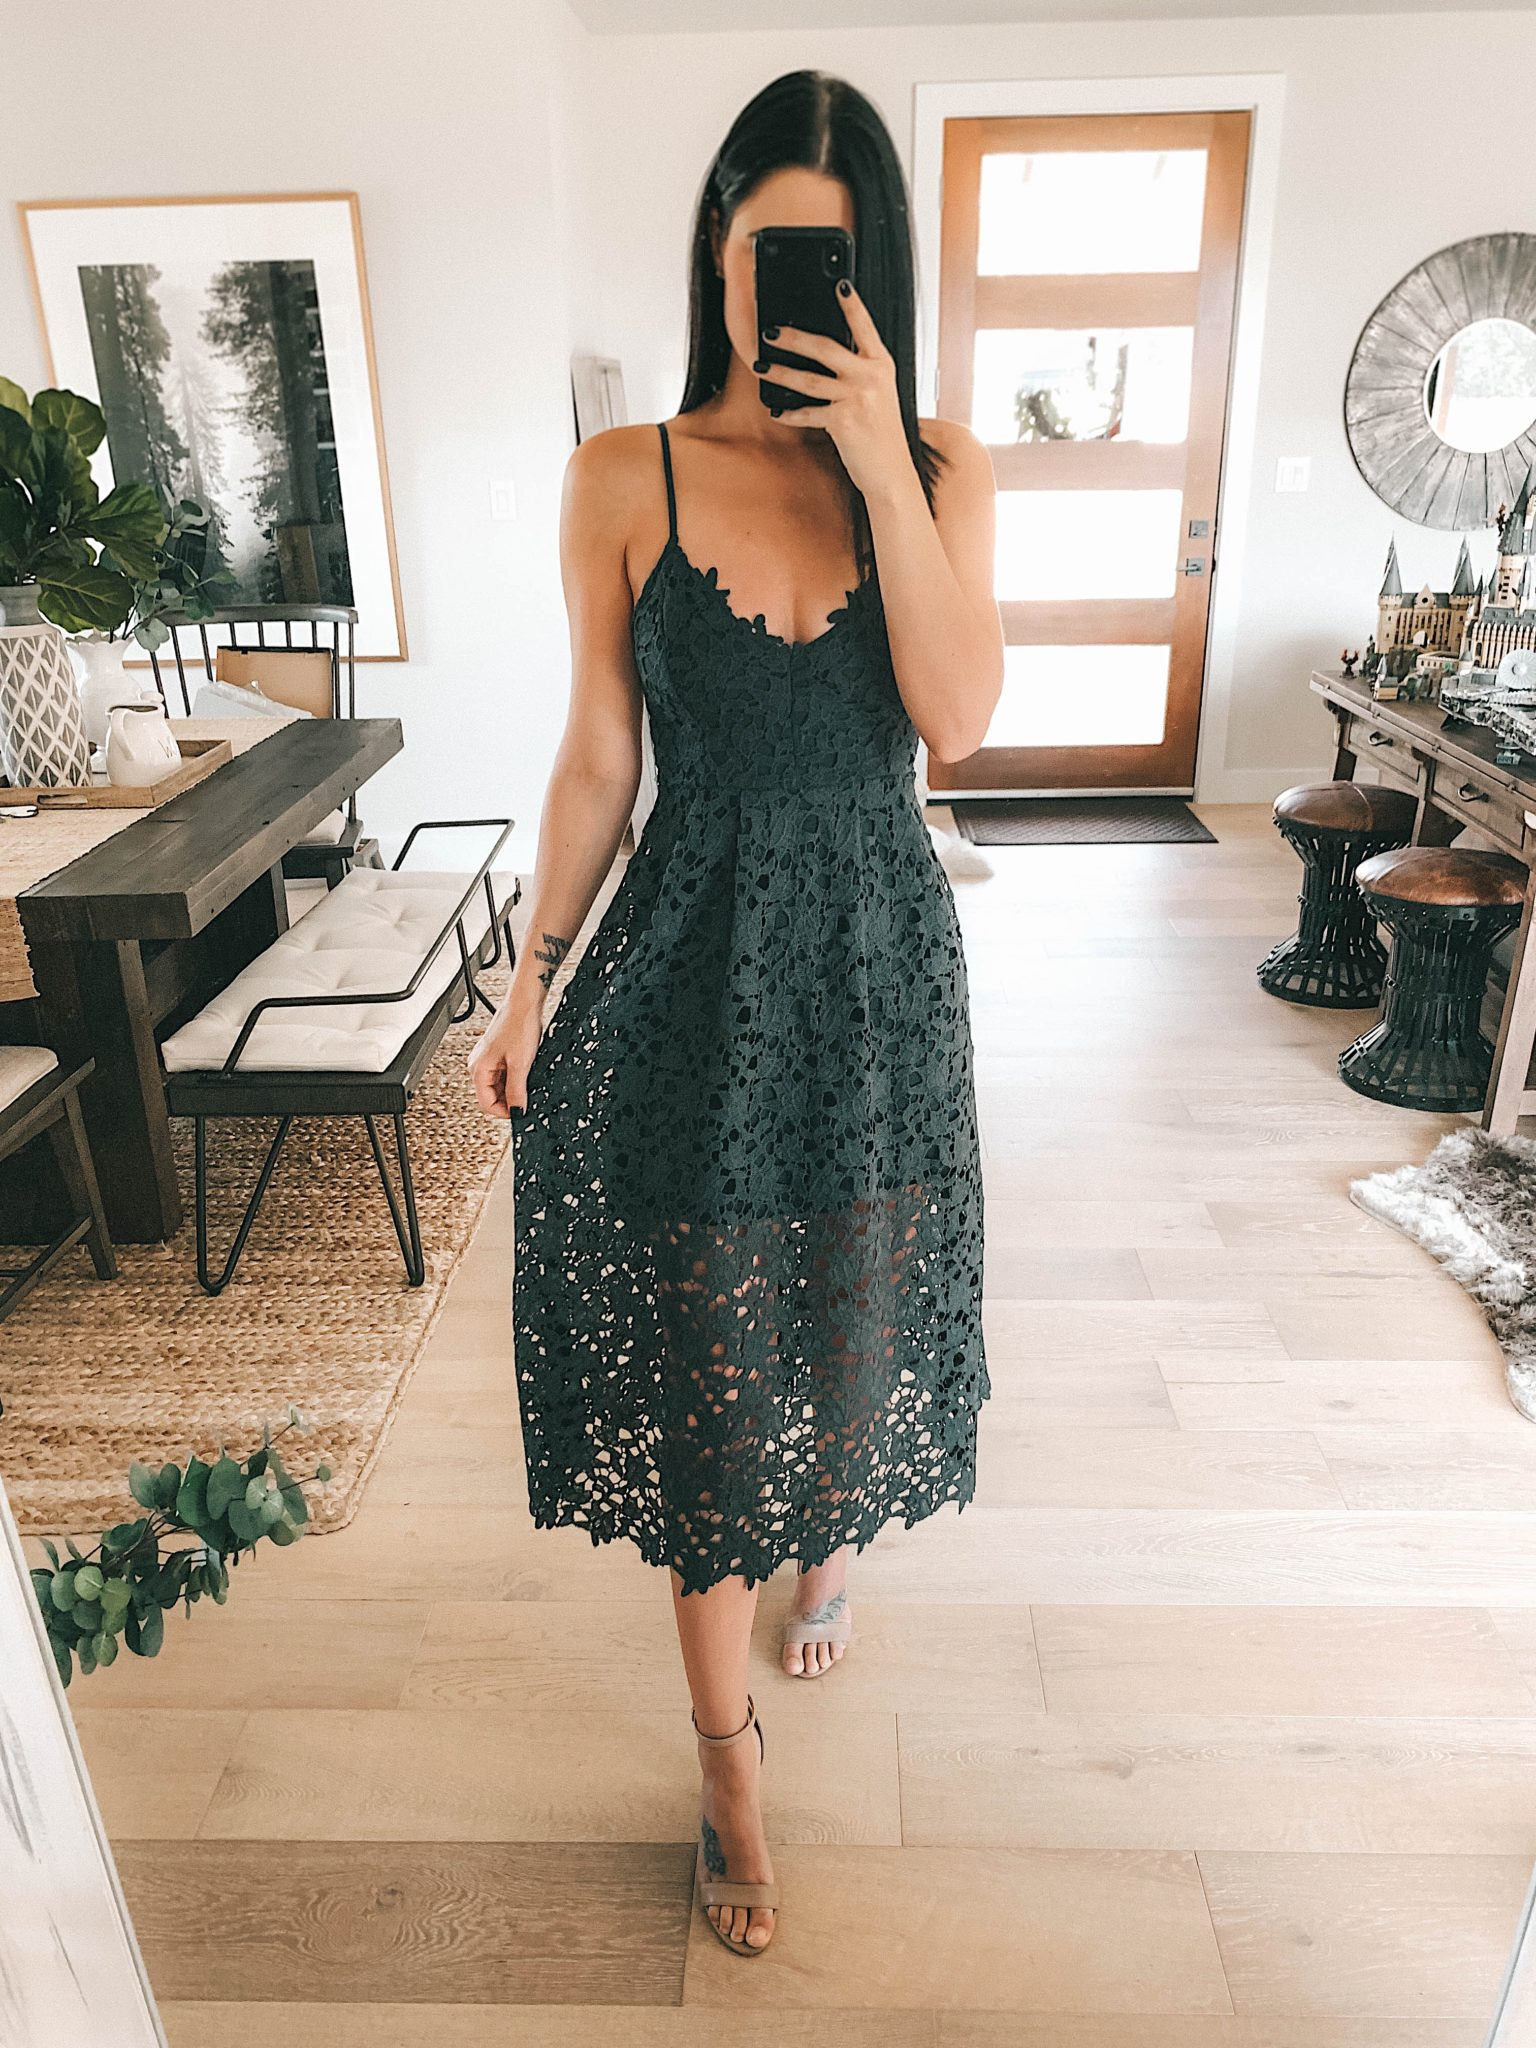 Sale Alert - Two Must Have Versatile Dresses for Summer by popular Austin fashion blog, Dressed to Kill: image of a woman wearing a black ASTR Lace Midi Dress